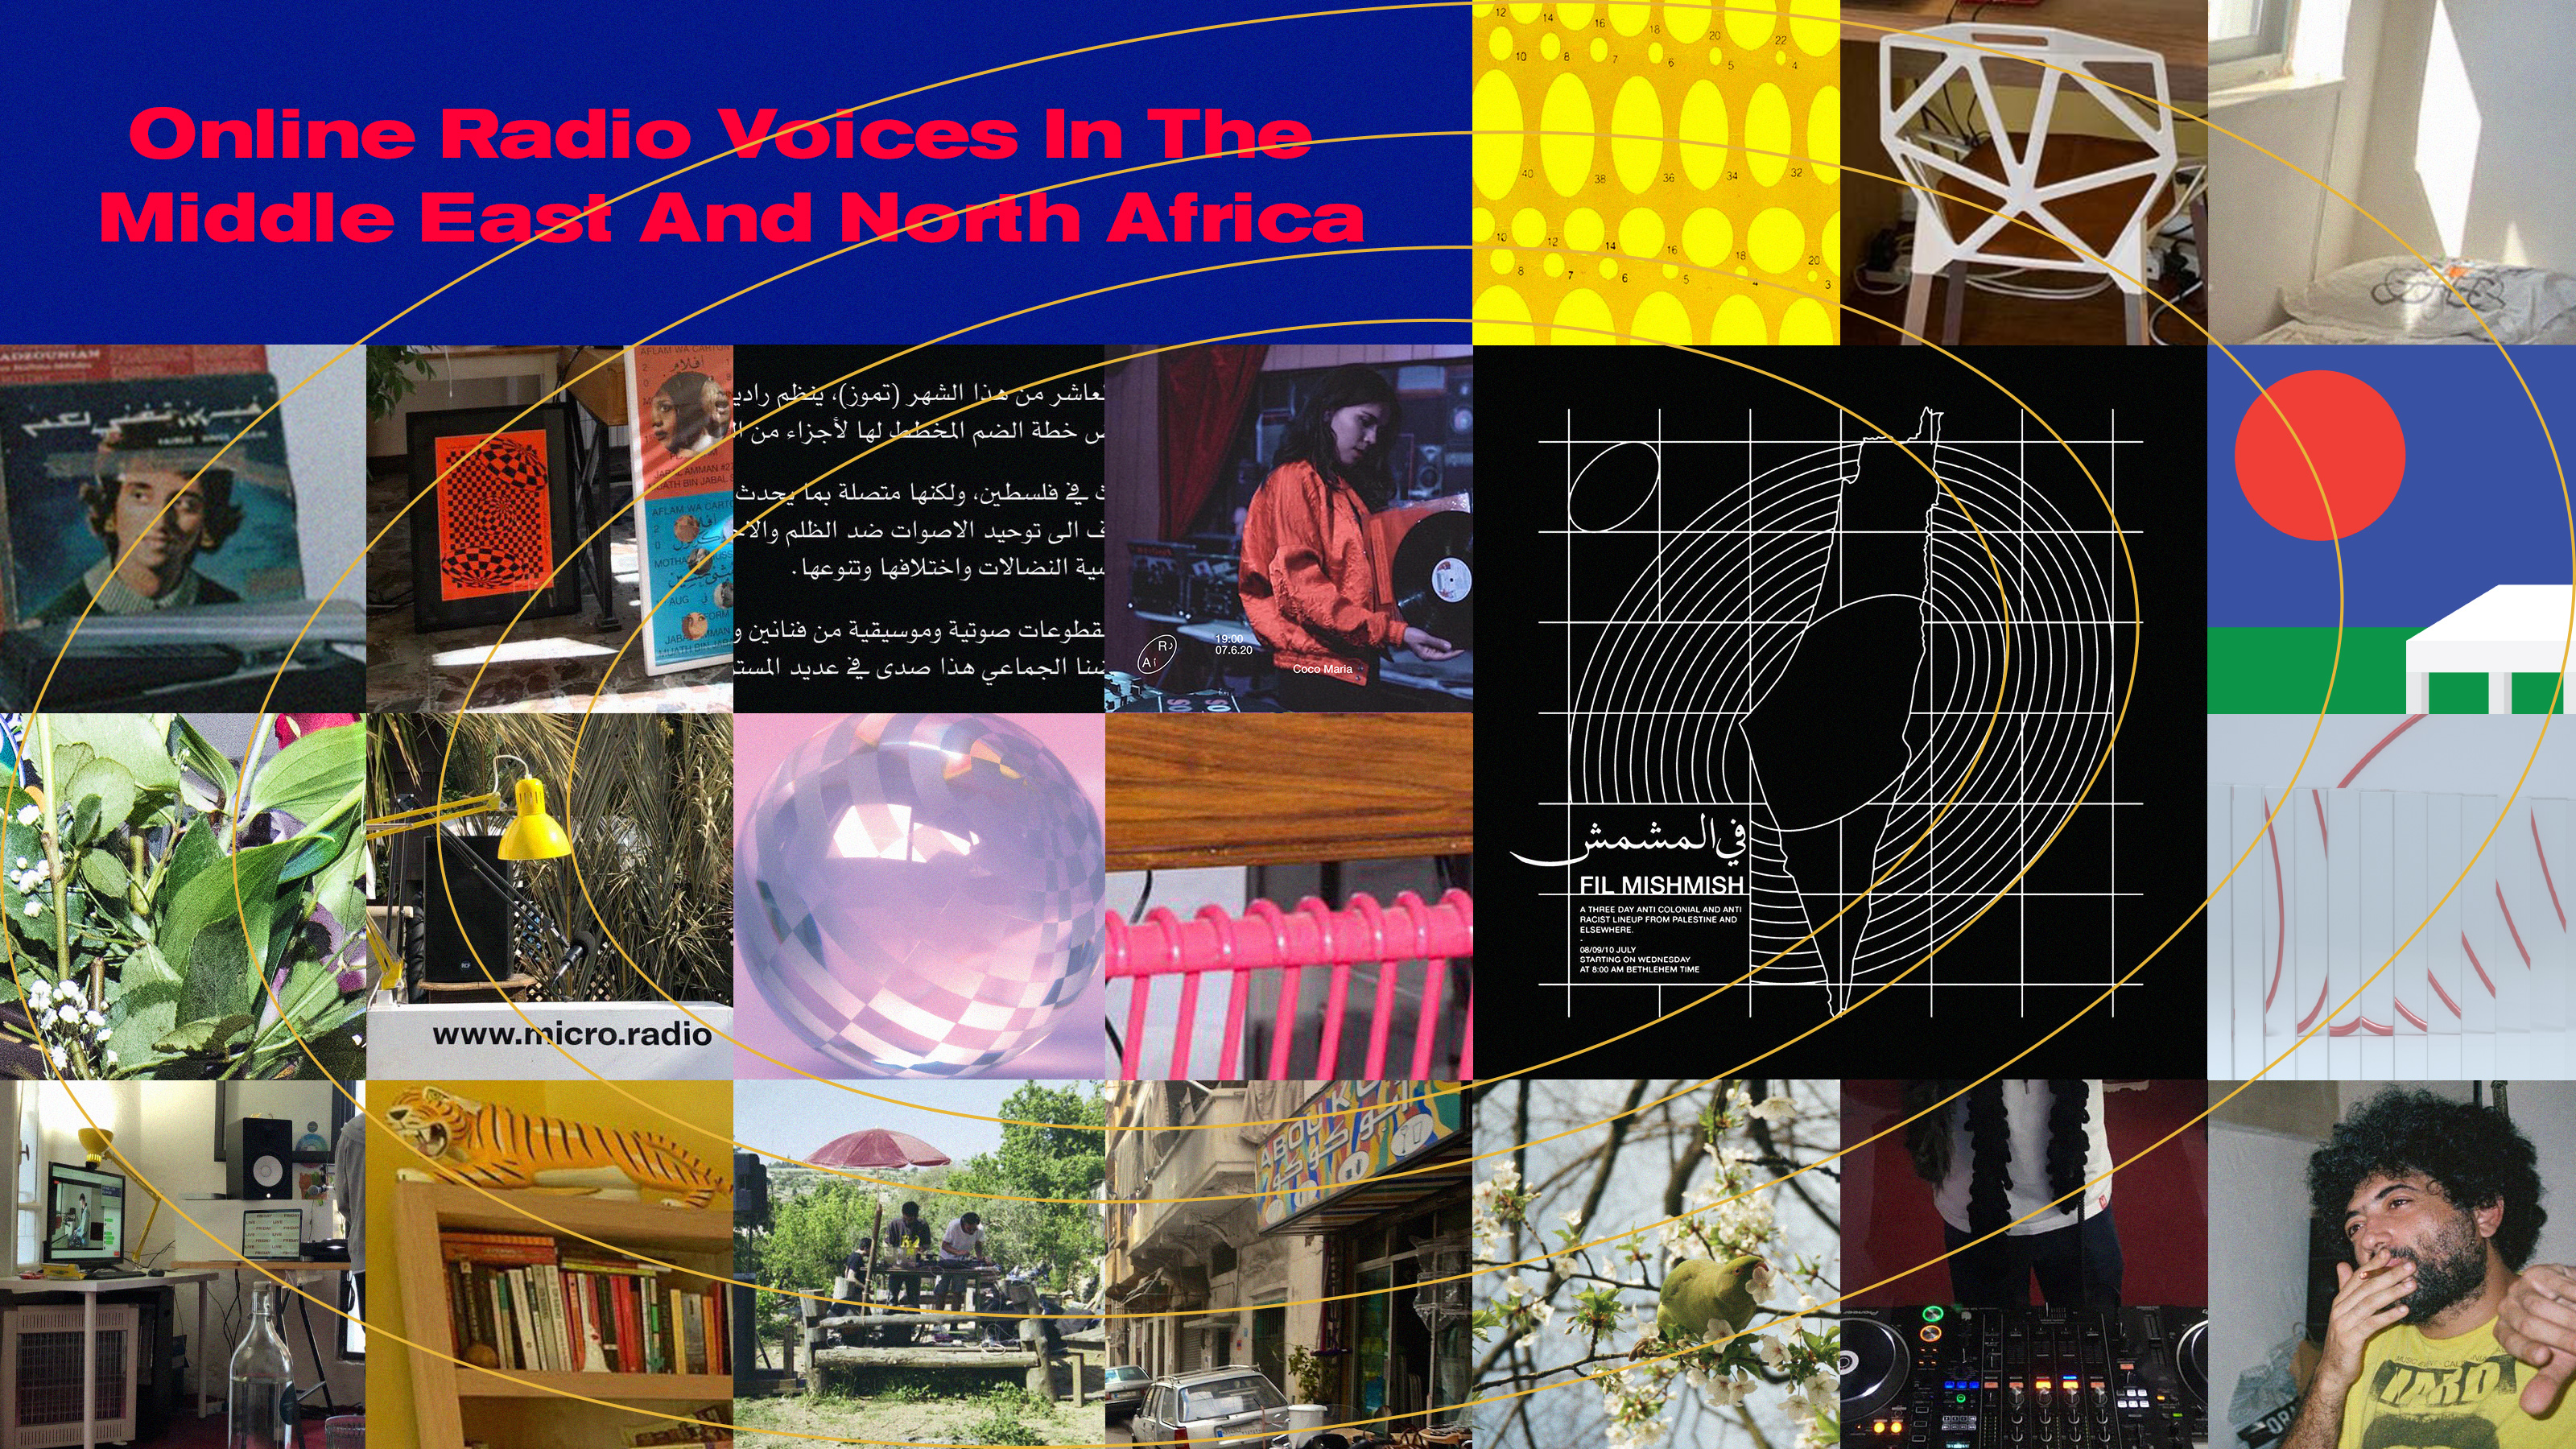 Online Radio Voices In The Middle East And North Africa